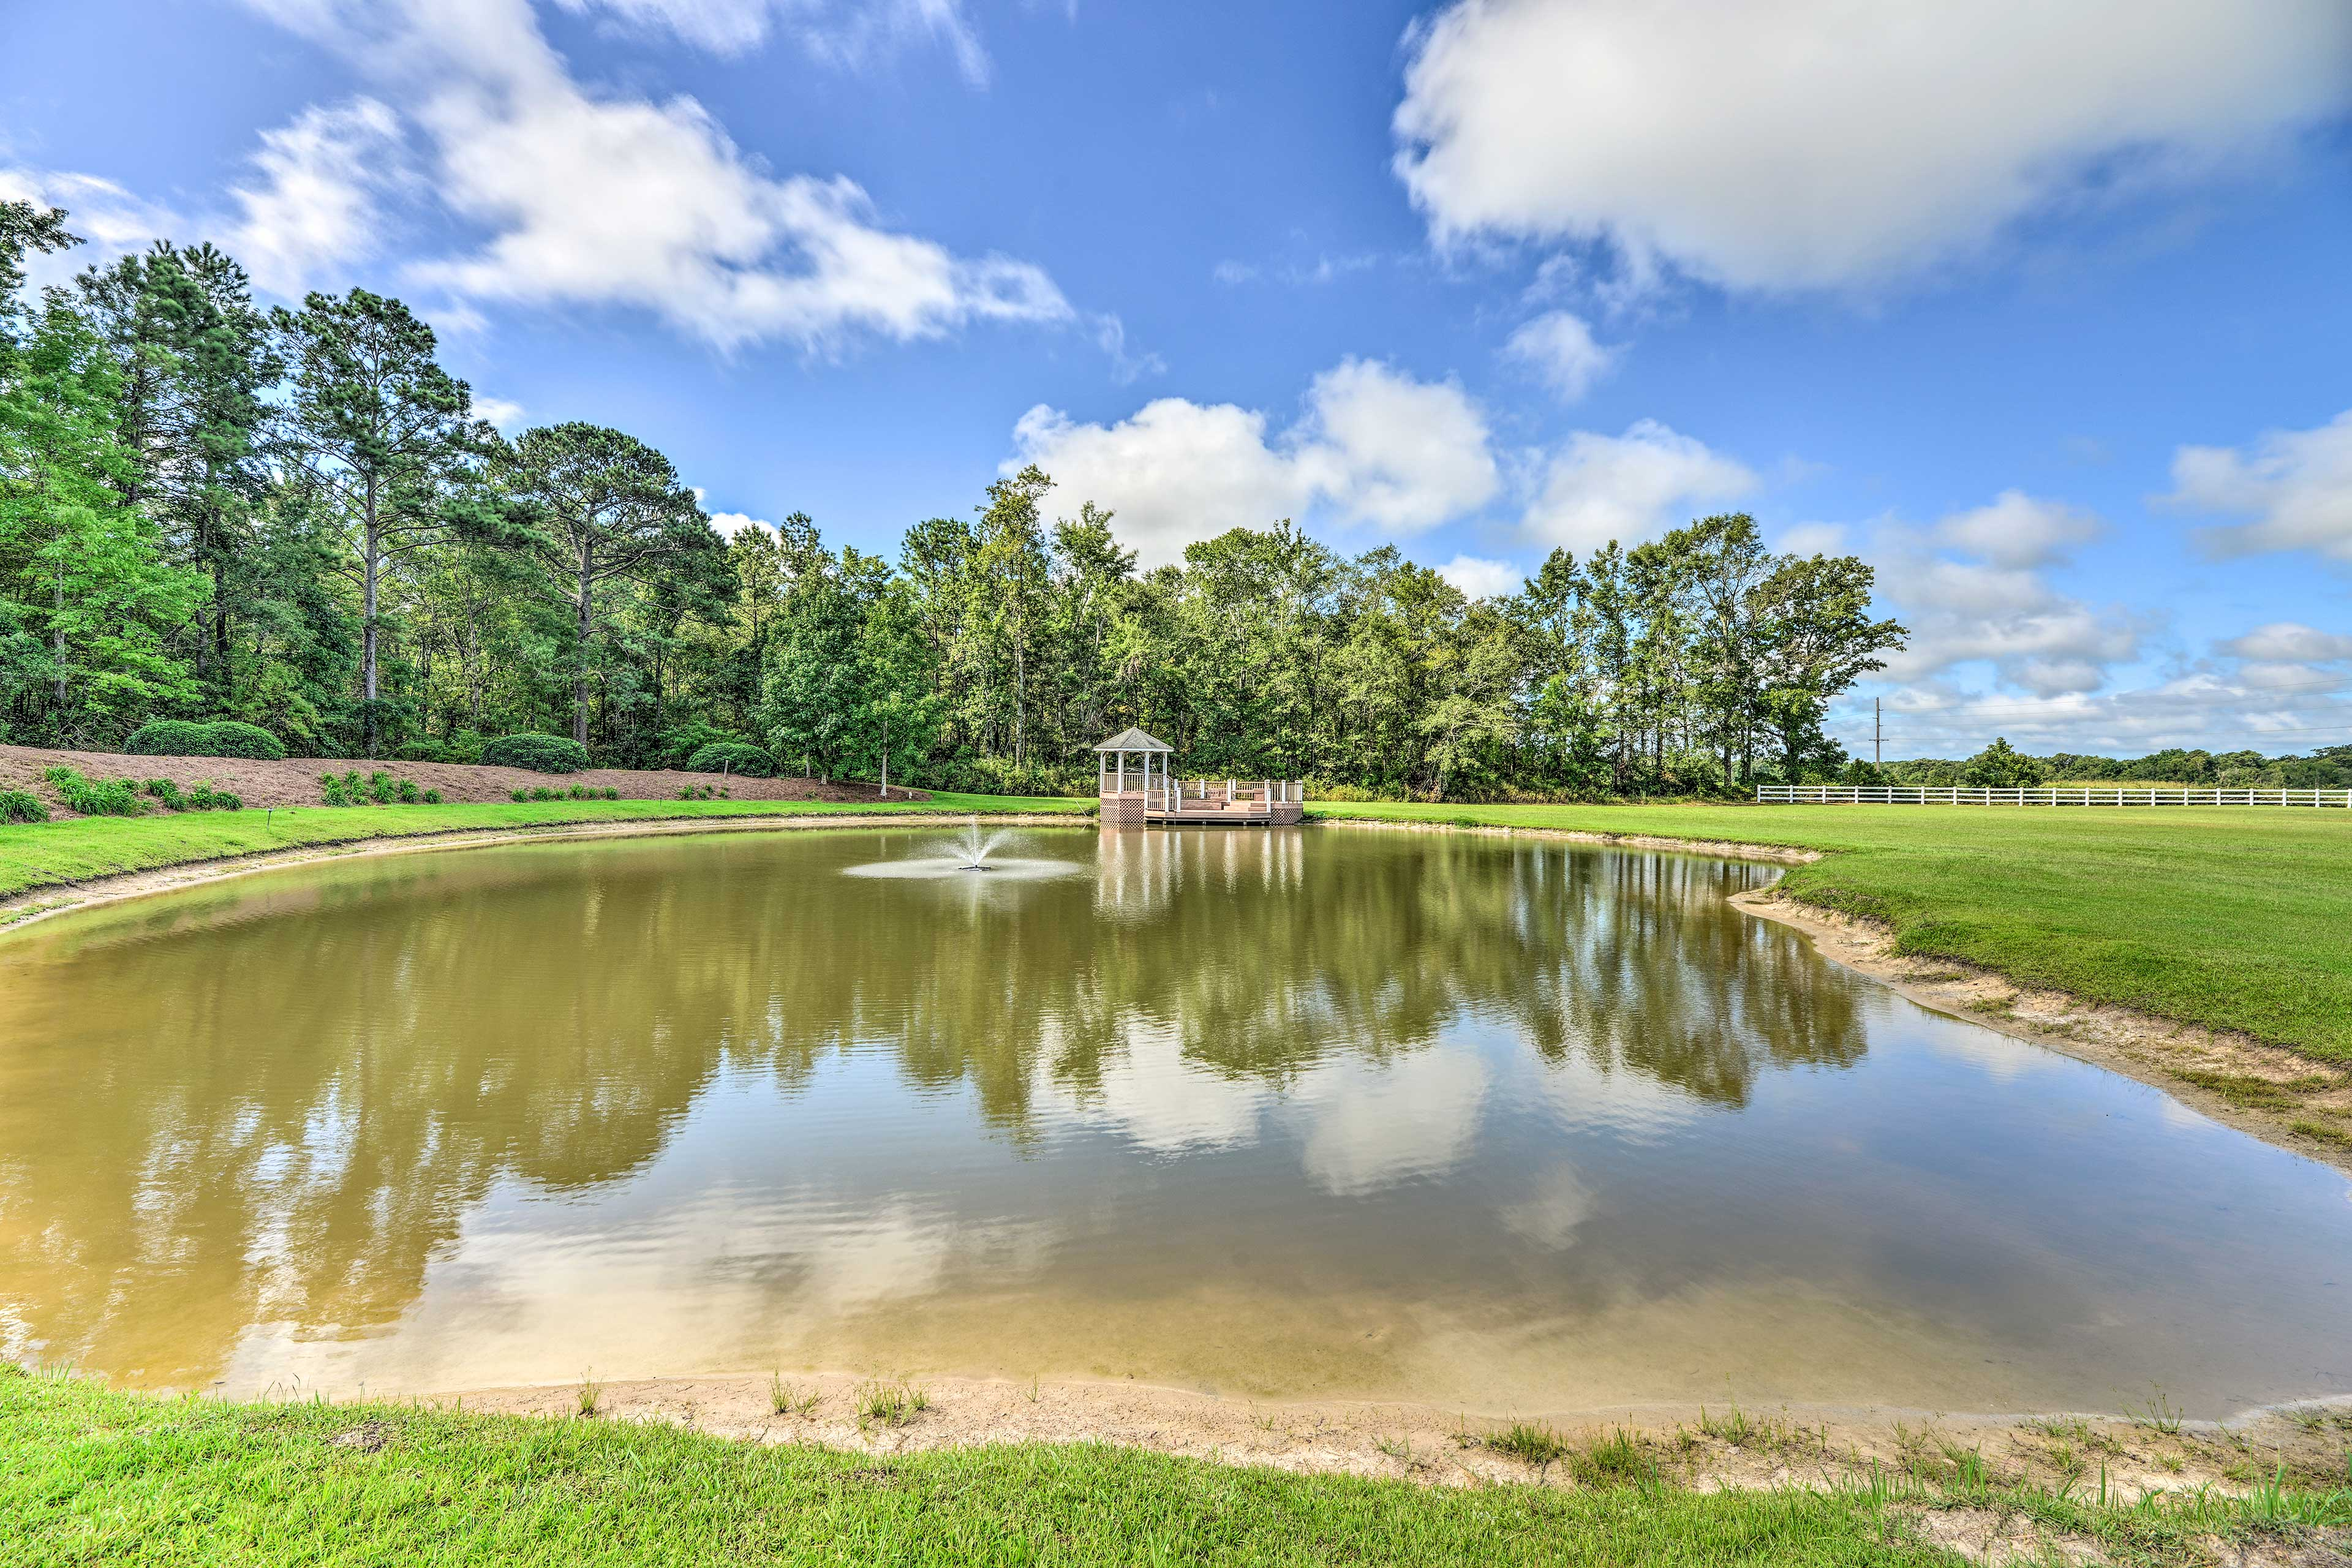 Hang out by the pond on the property.